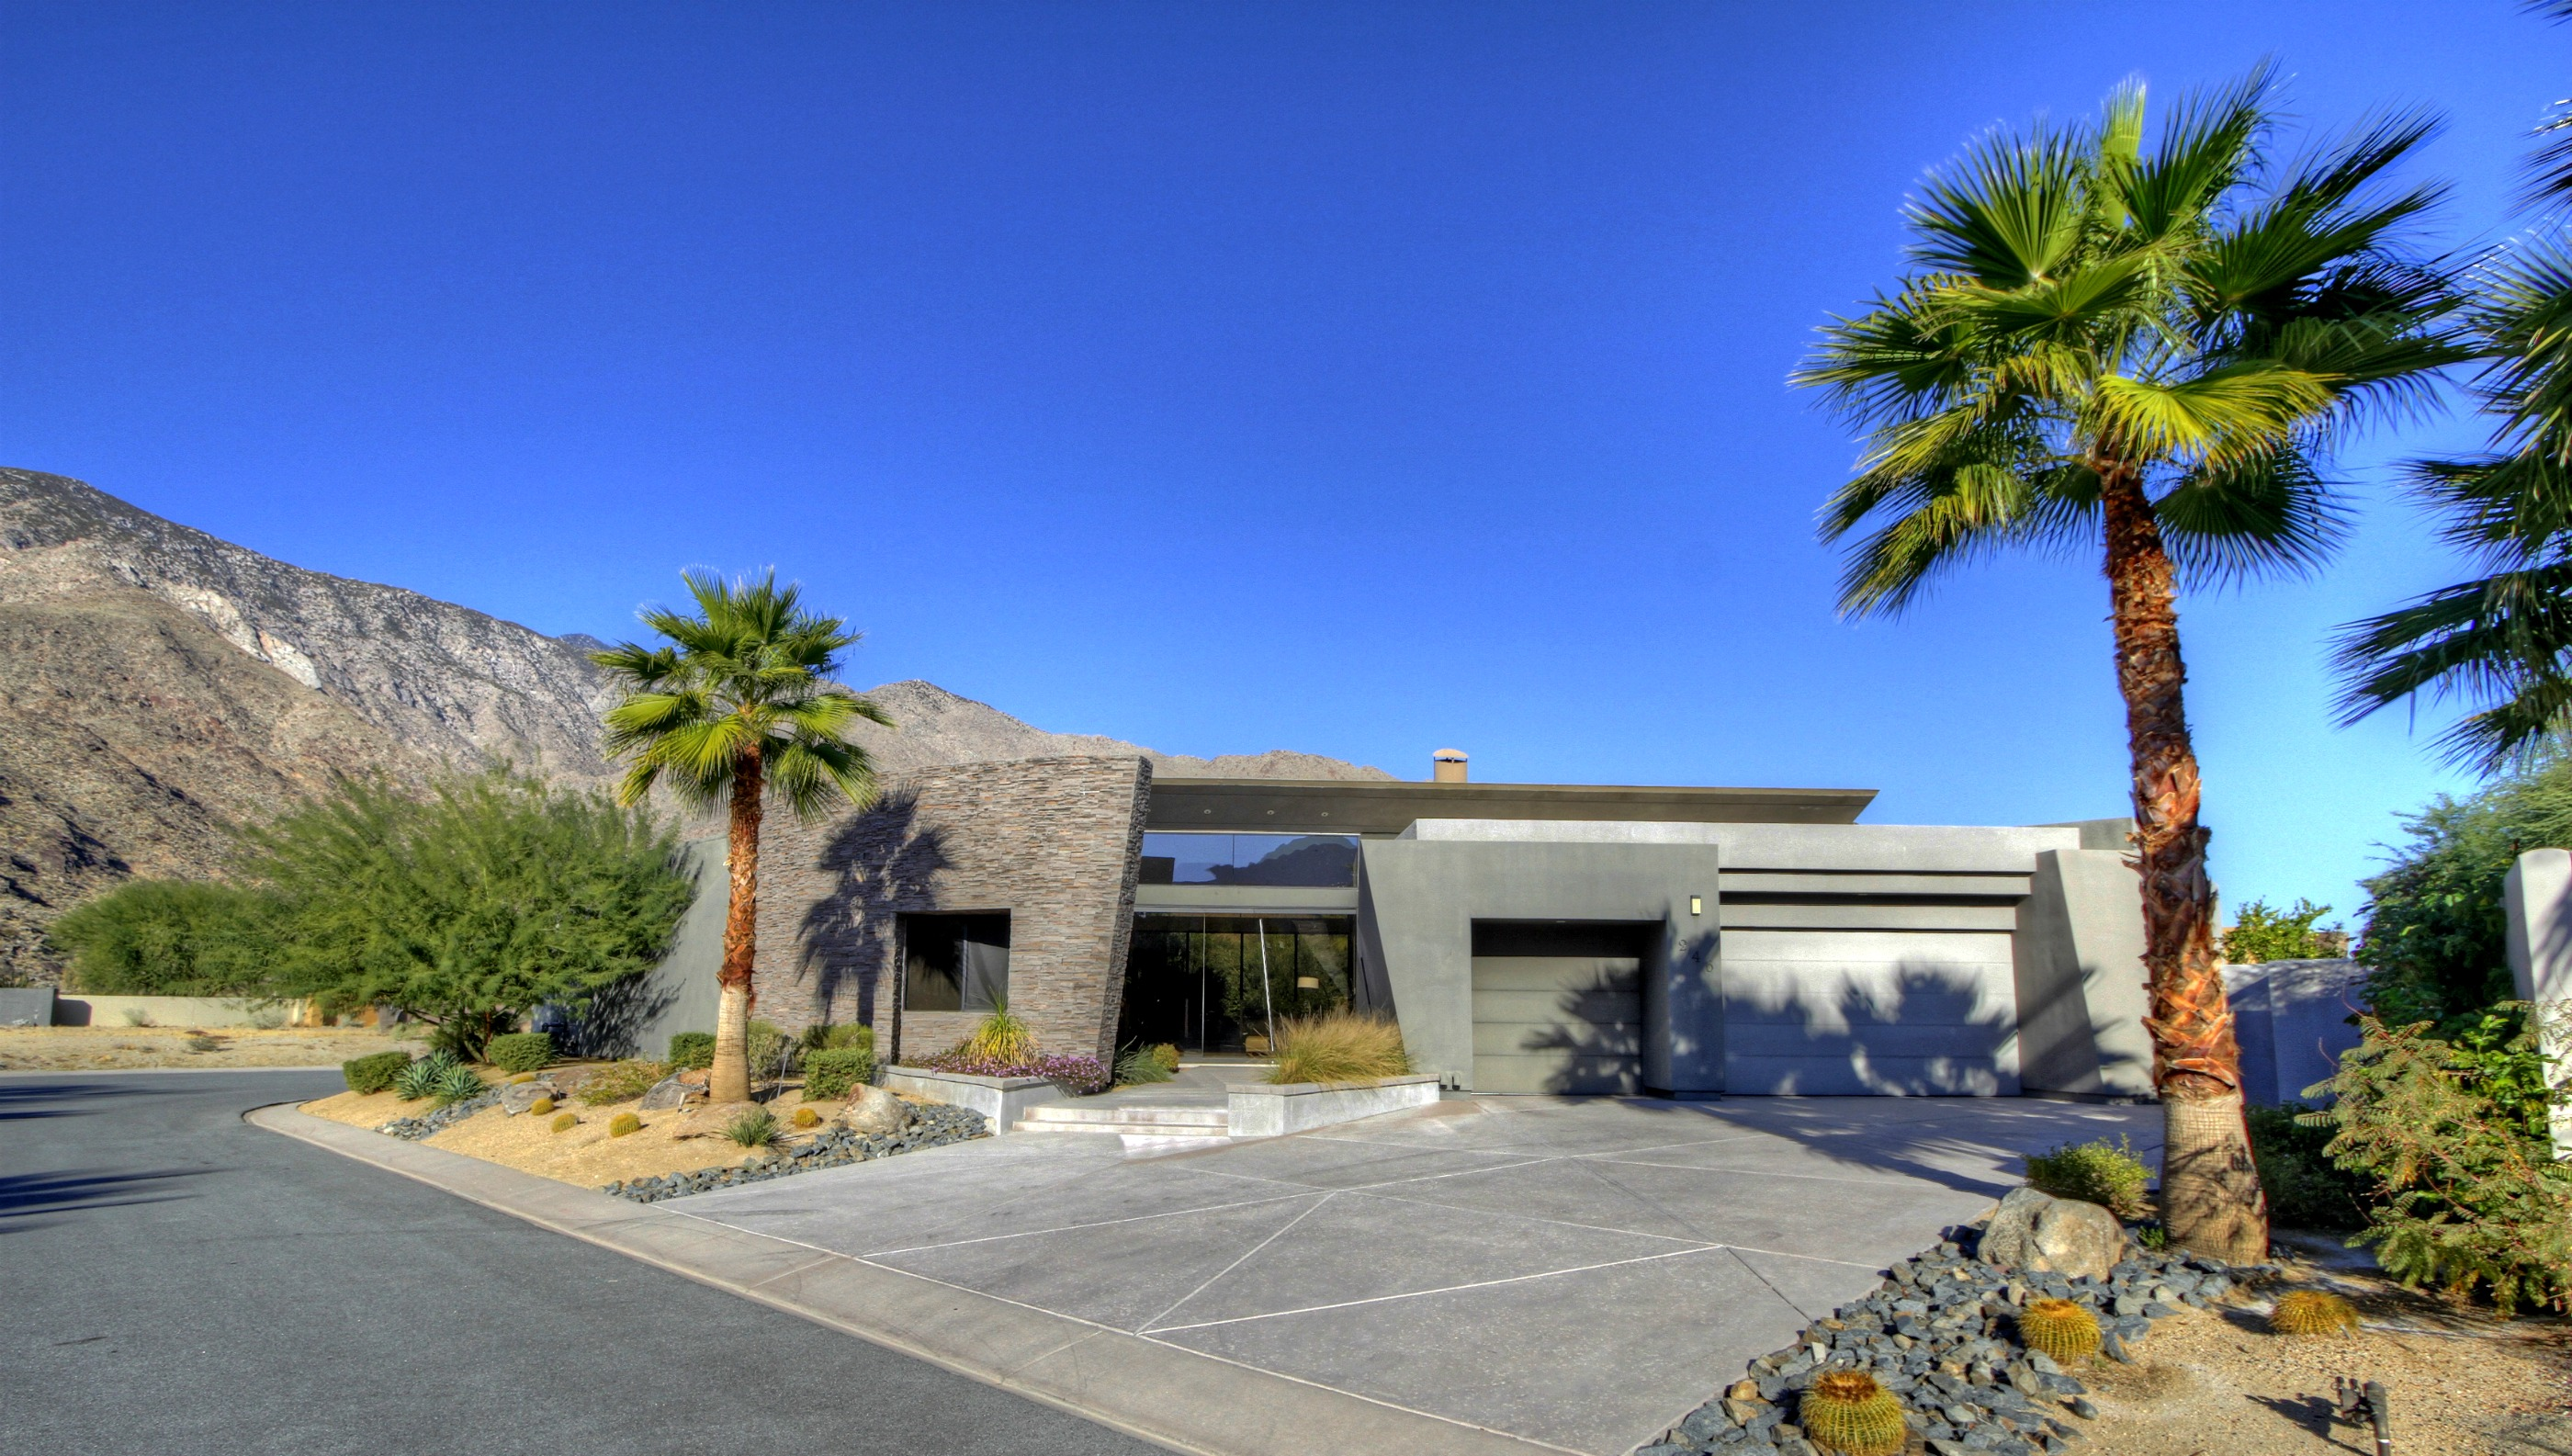 Stunning Luxury Home In Palm Springs, CaliforniaHigh End Homes In Nearby  Palm Springs Are Priced Just Attractive As Luxury Homes In La Quinta. ...